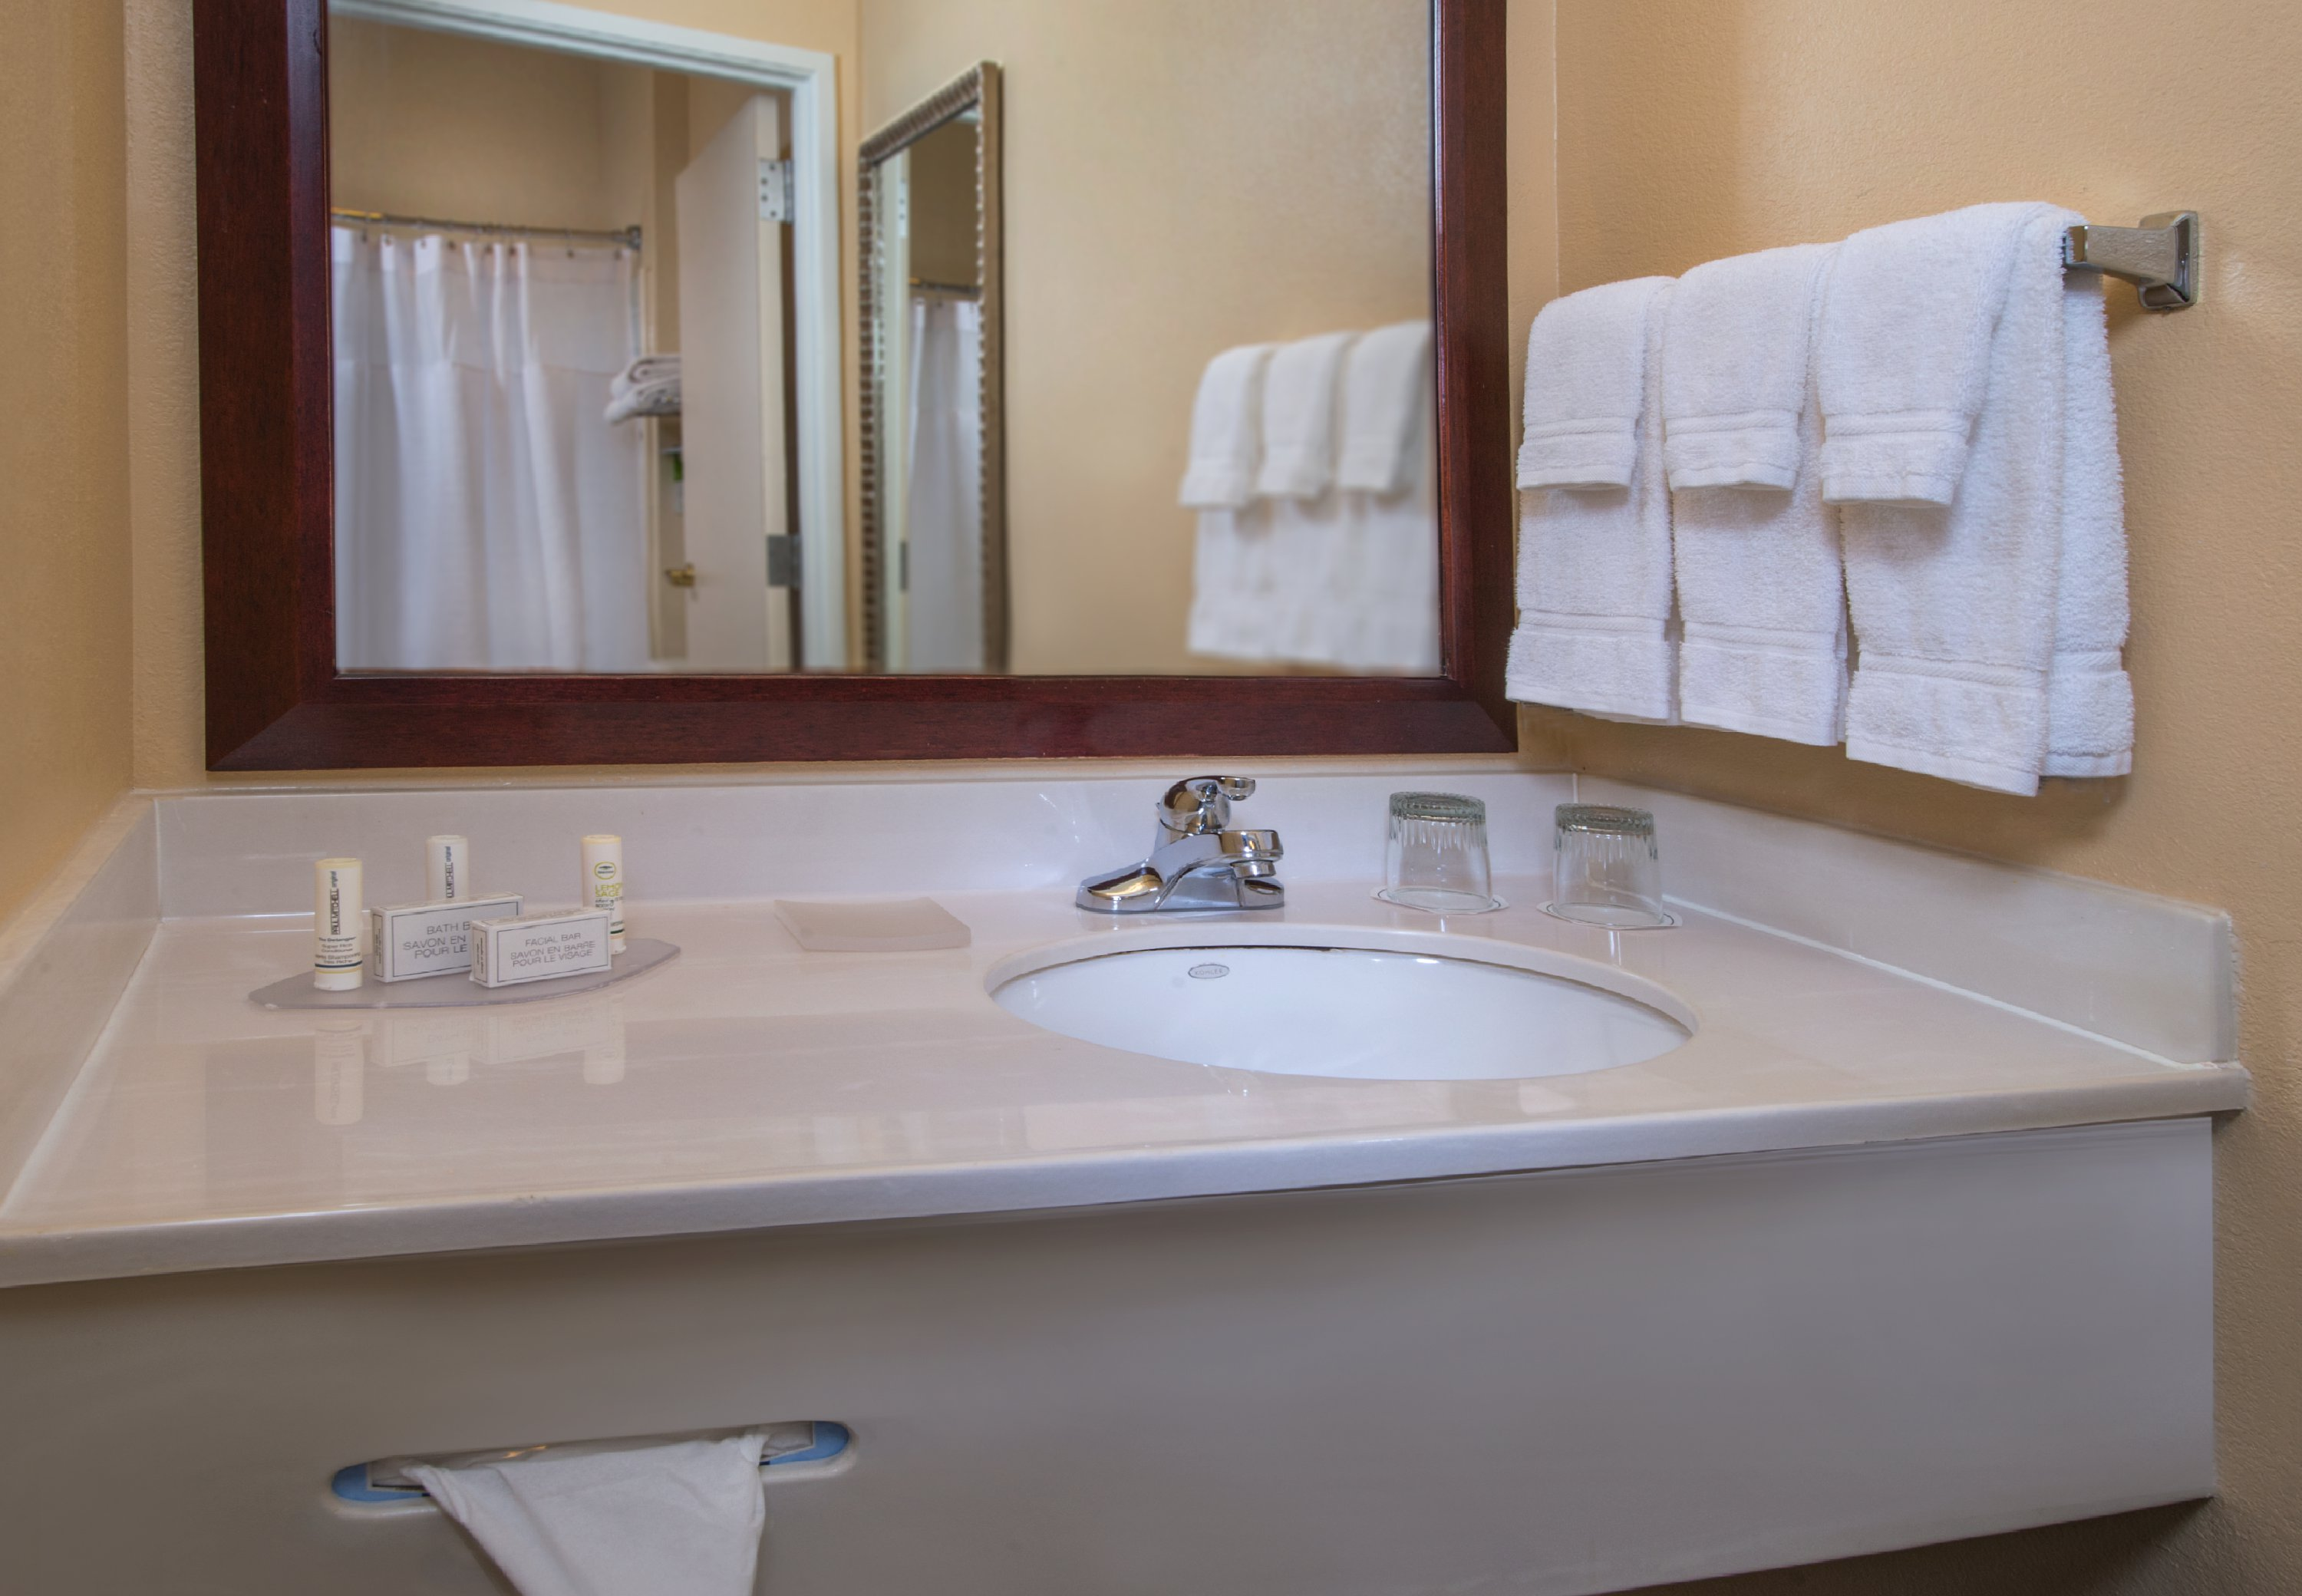 SpringHill Suites by Marriott Edgewood Aberdeen image 2